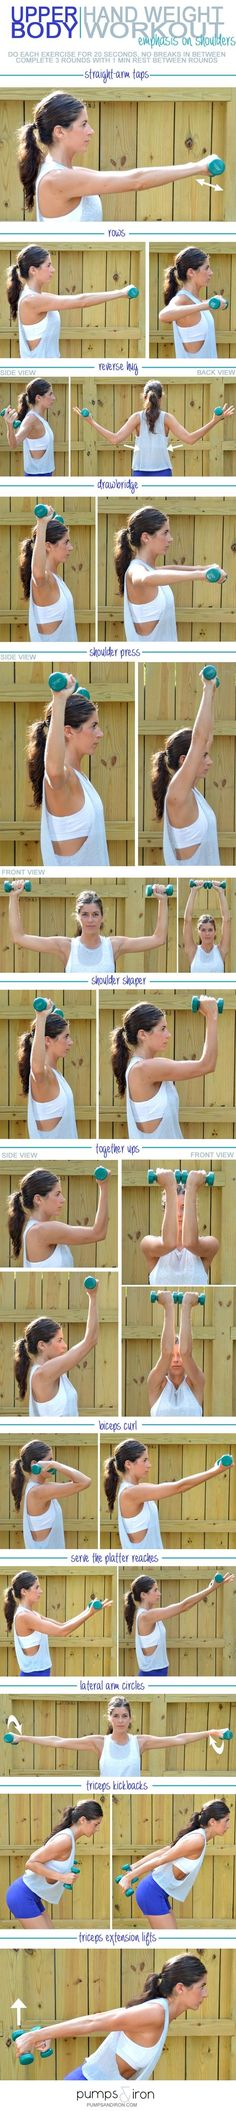 Fitness Motivation : Upper-Body Hand Weight Workout (emphasis on shoulders) Helps to keep strong thro. - All Fitness Fitness Workouts, Fitness Motivation, Fitness Diet, Fun Workouts, At Home Workouts, Health Fitness, Workout Diet, Workout Routines, Training Motivation